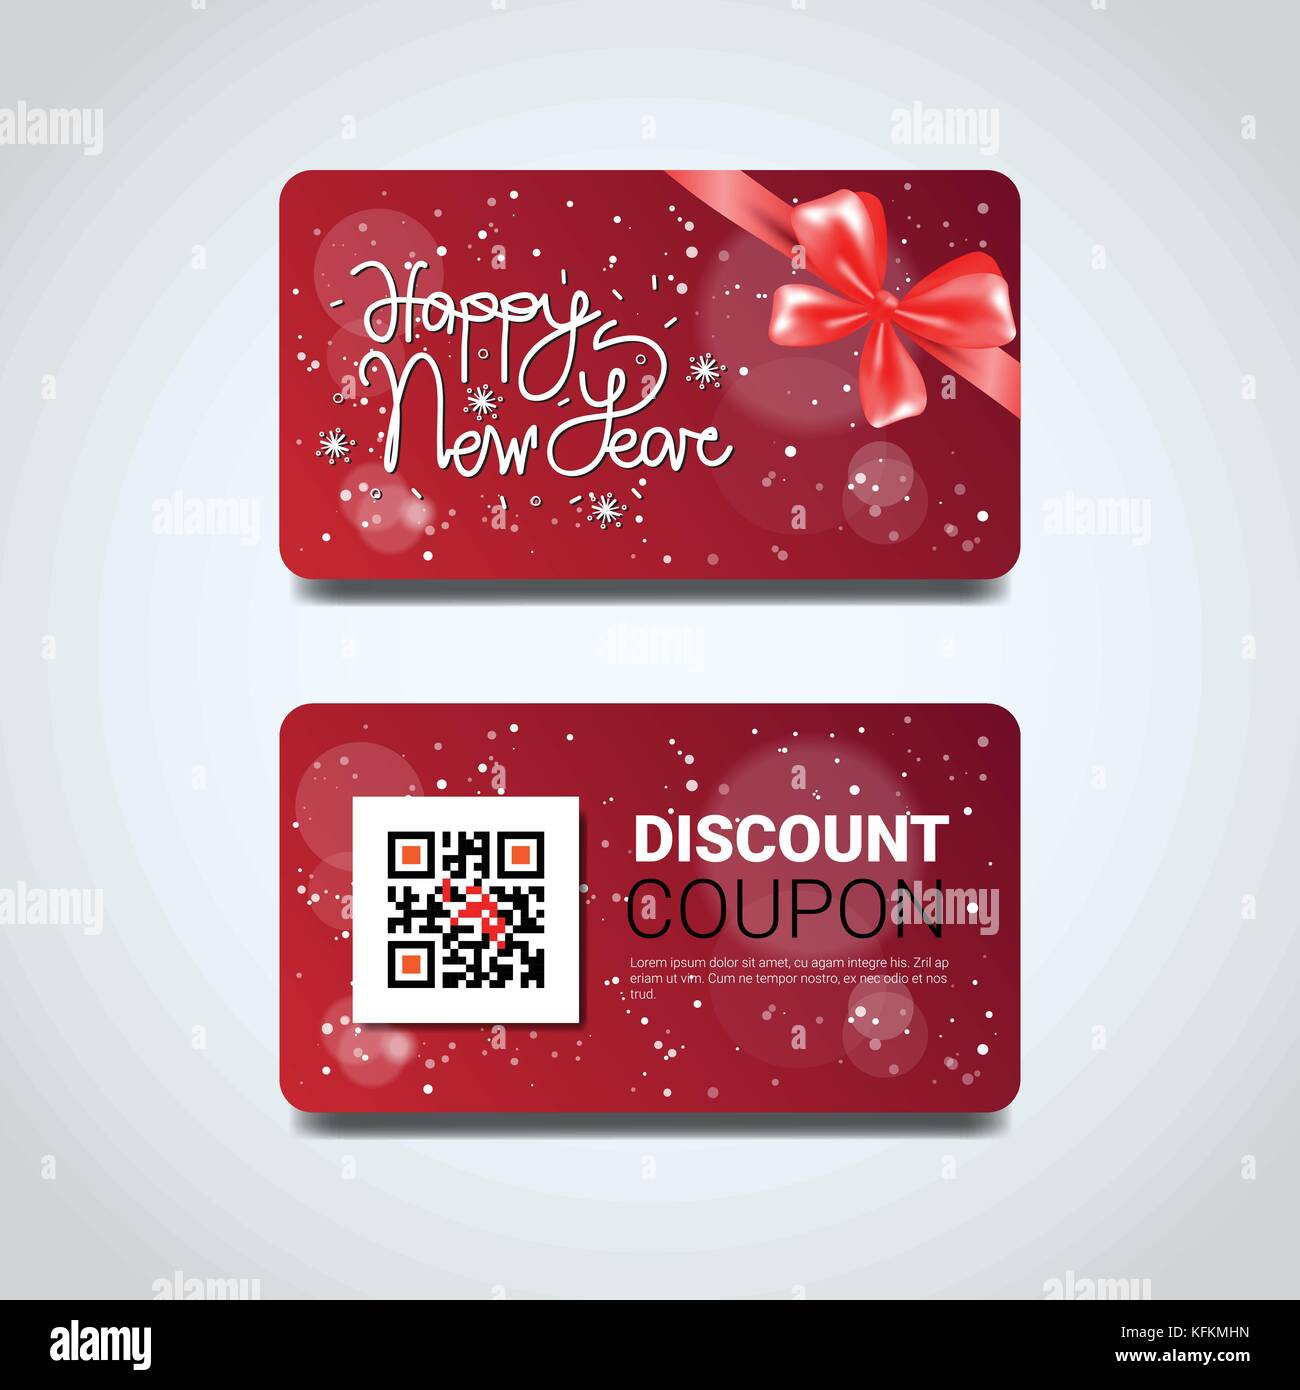 Discount Coupon Design Voucher With Qr Code For Present On Merry